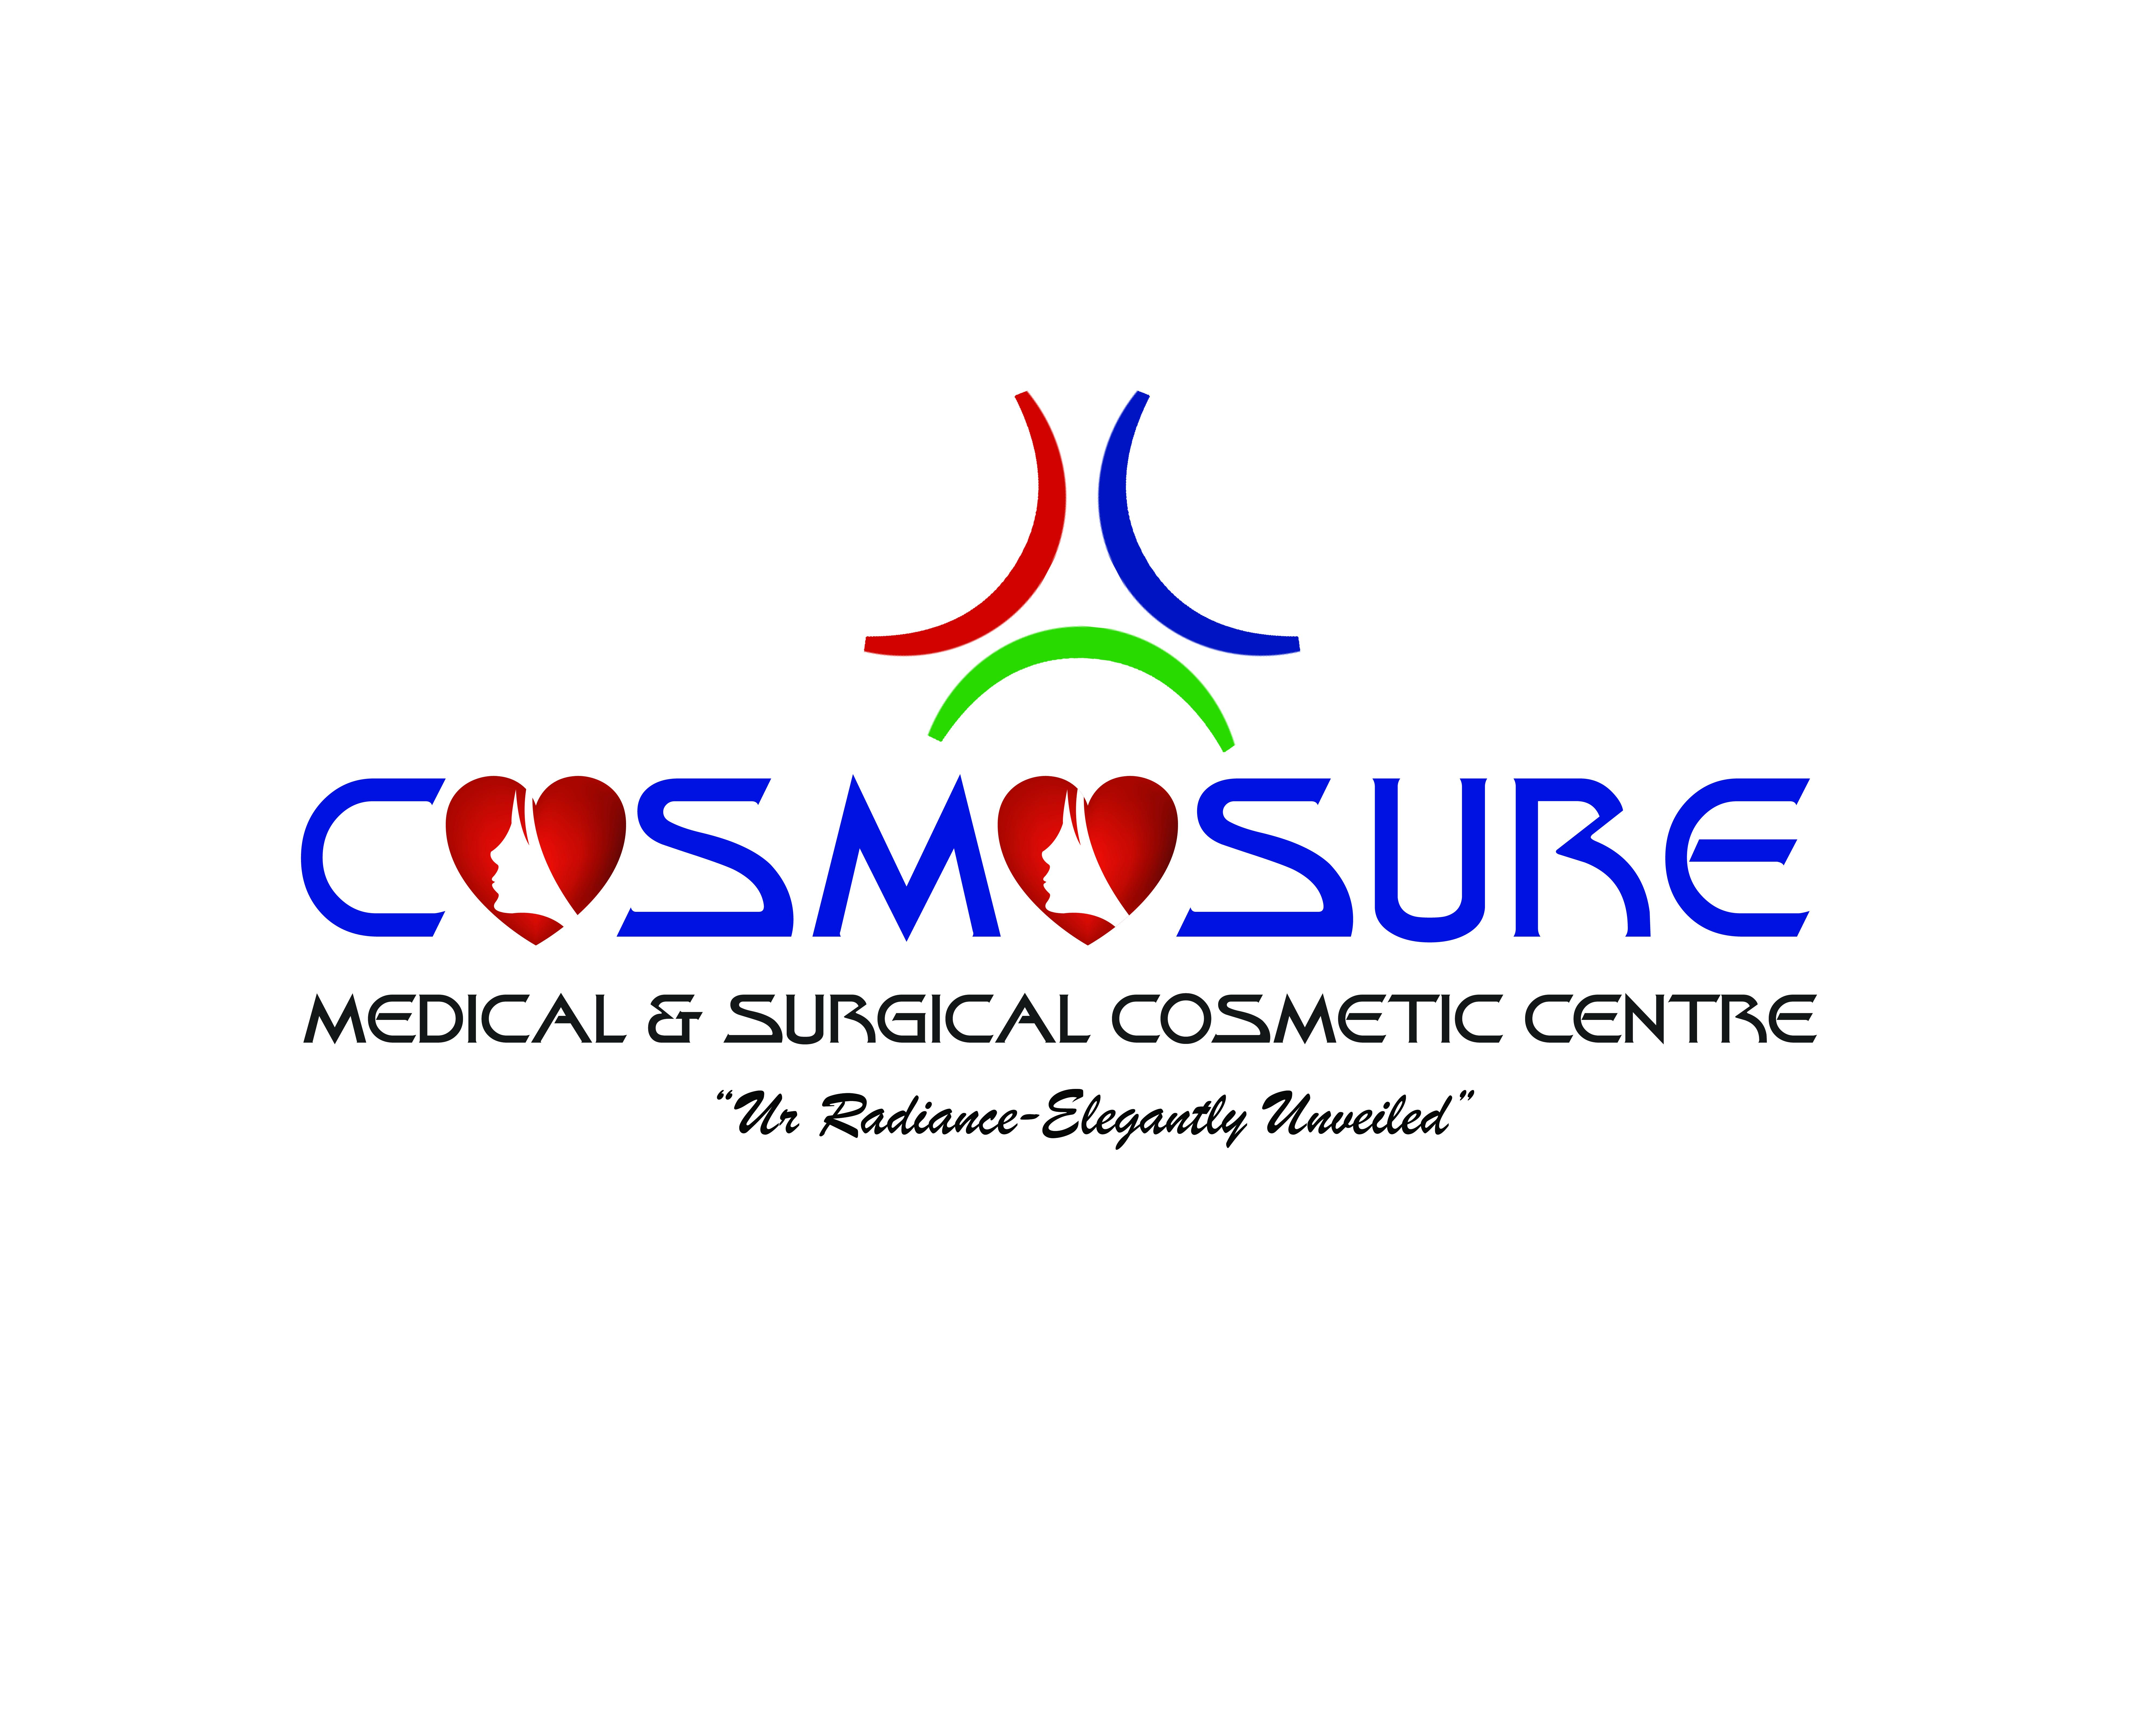 Cosmosure Medical And Surgical Cosmetic Centre